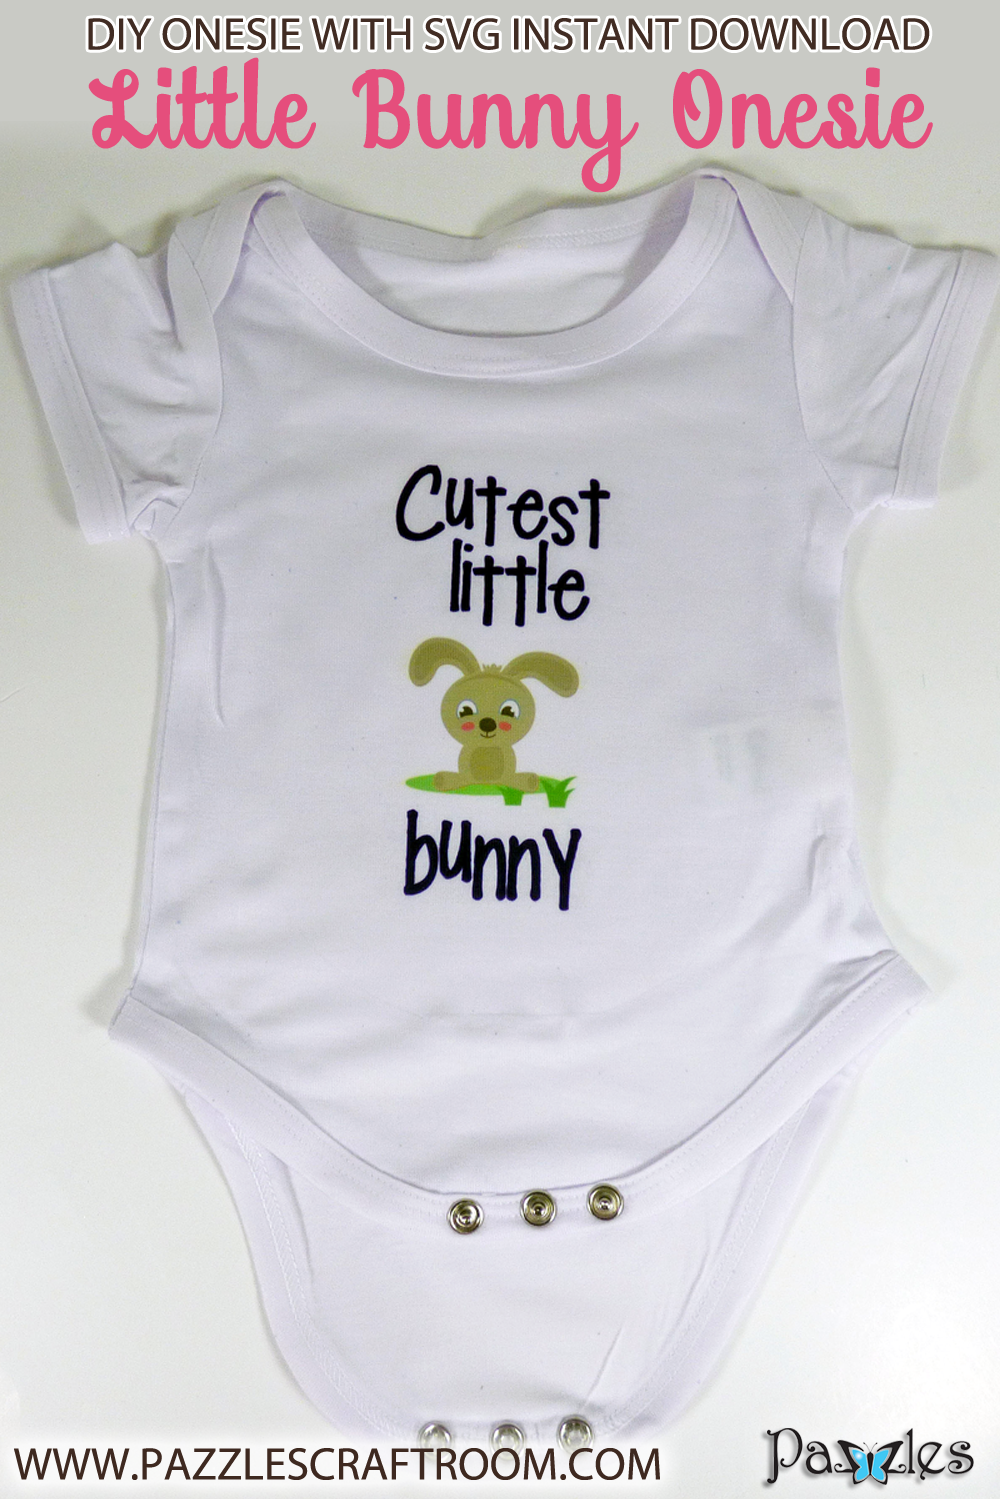 Pazzles DIY Bunny Onesie with instant SVG download. Compatible with all major electronic cutters including Pazzles Inspiration, Cricut, and Silhouette Cameo. Design by Julie Flanagan.